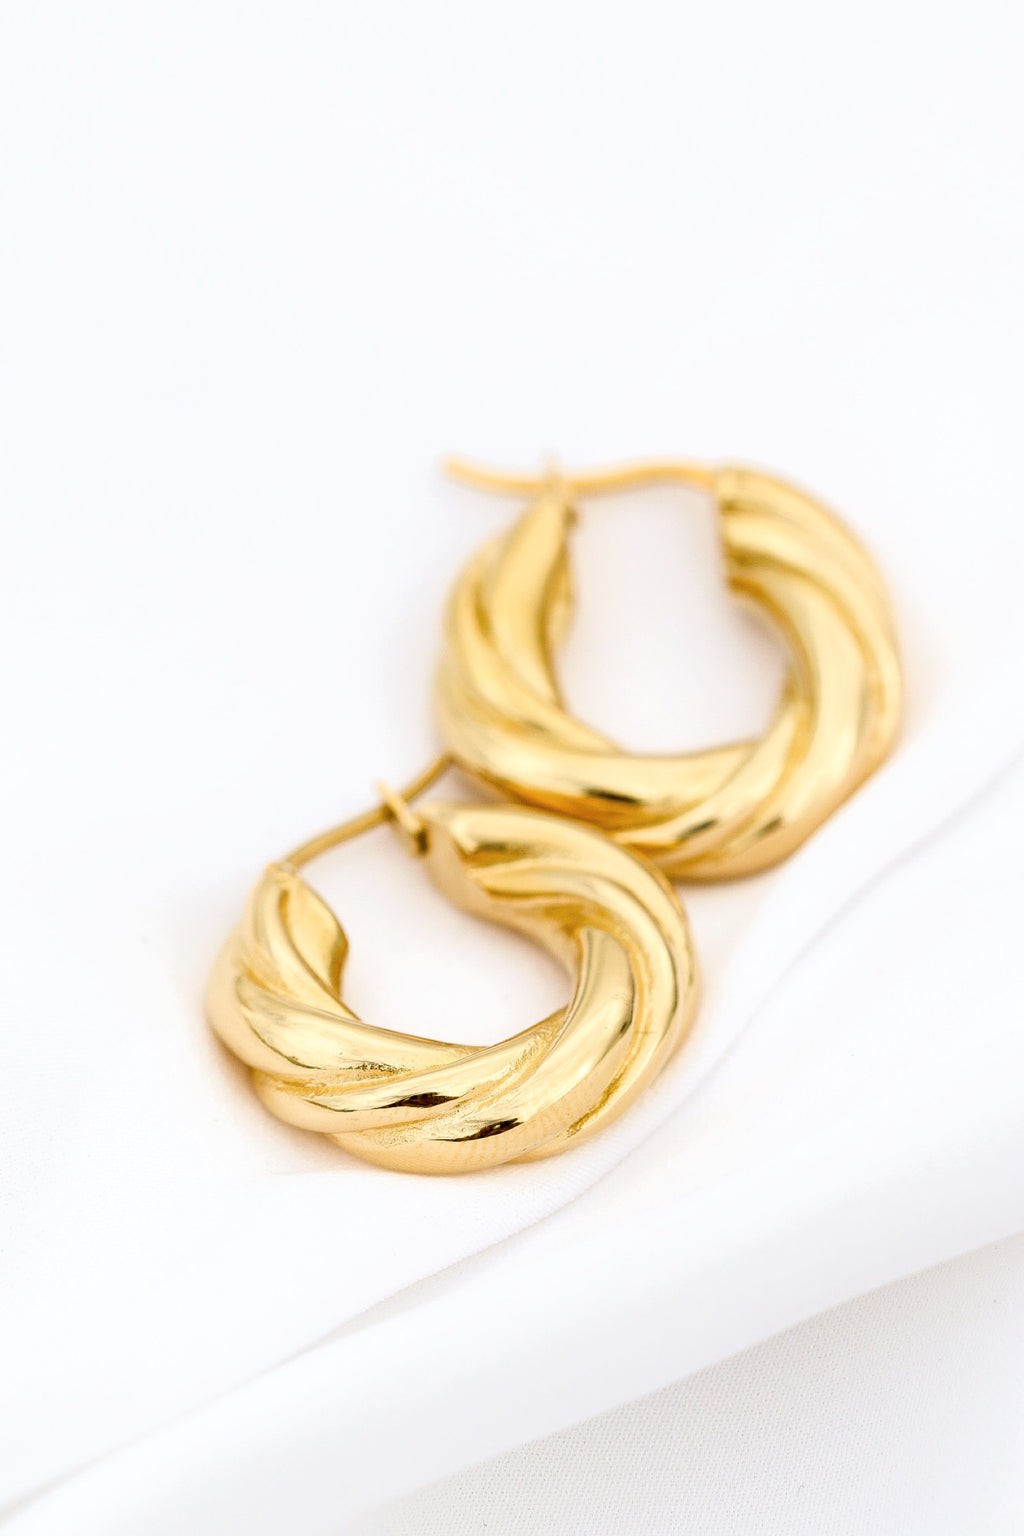 JENNIE CHUNKY HOOPS - Taimana Boutique